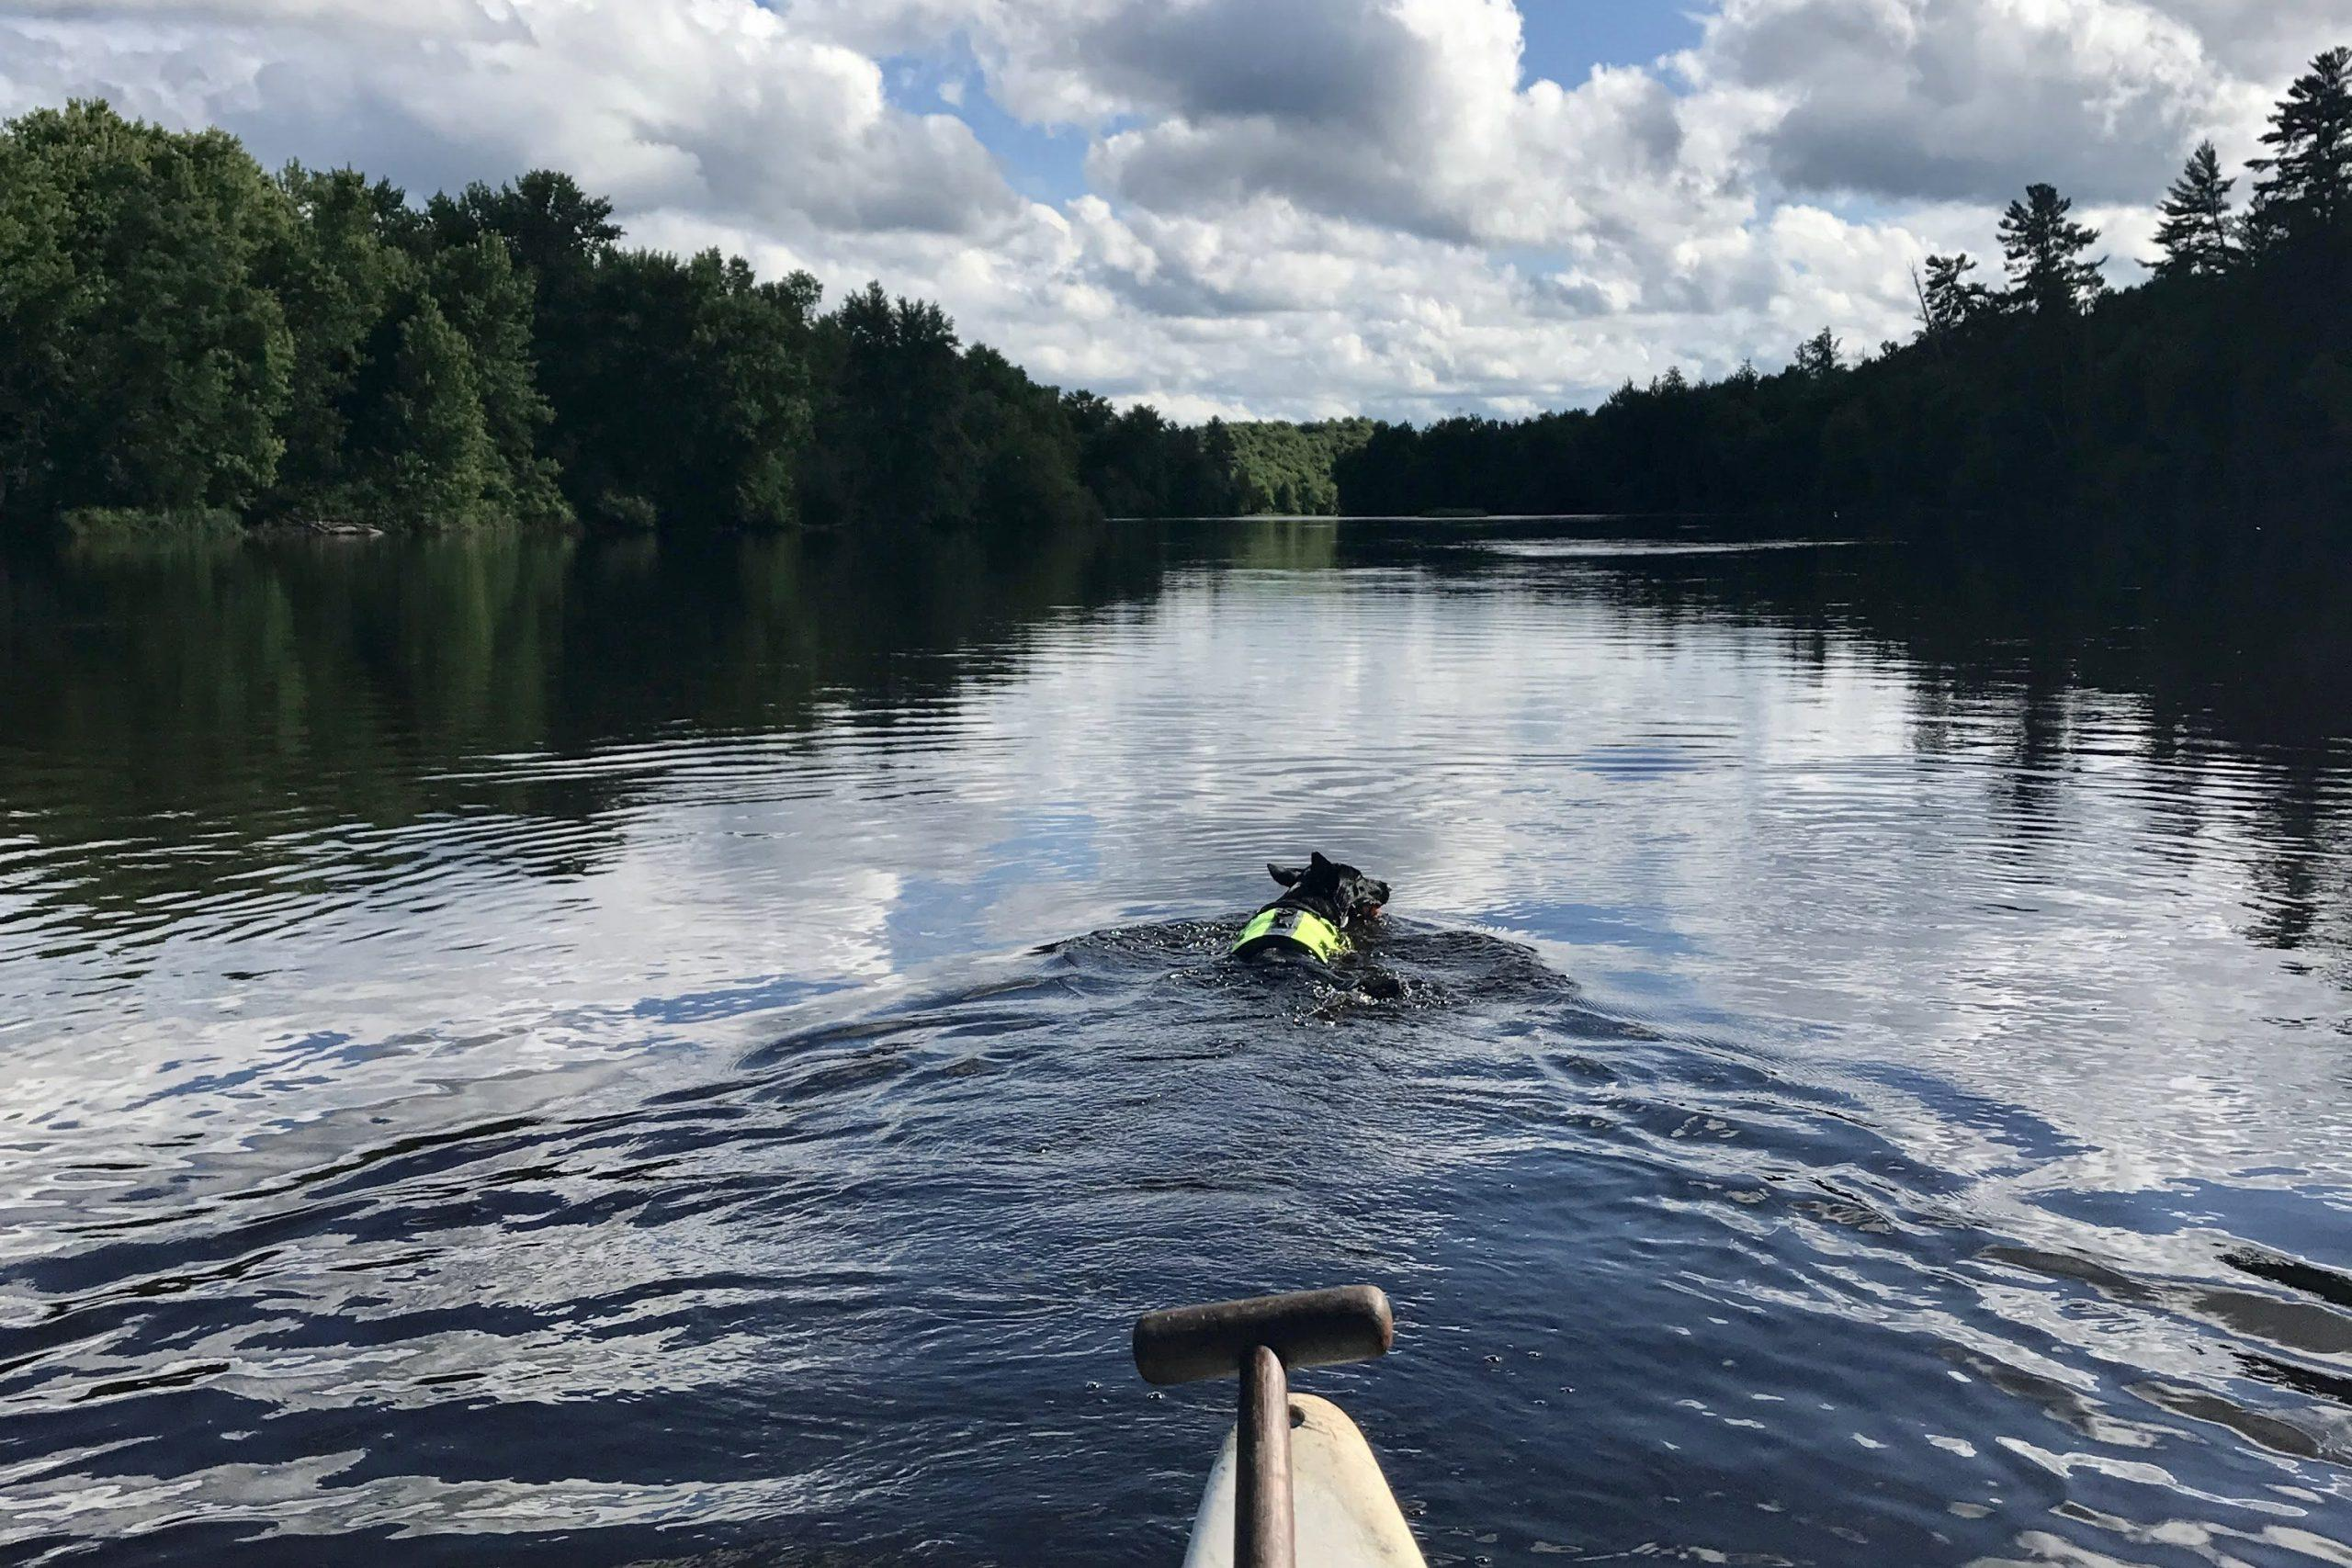 Luna paddles in river ahead of canoe. Cloudy blue skies above.